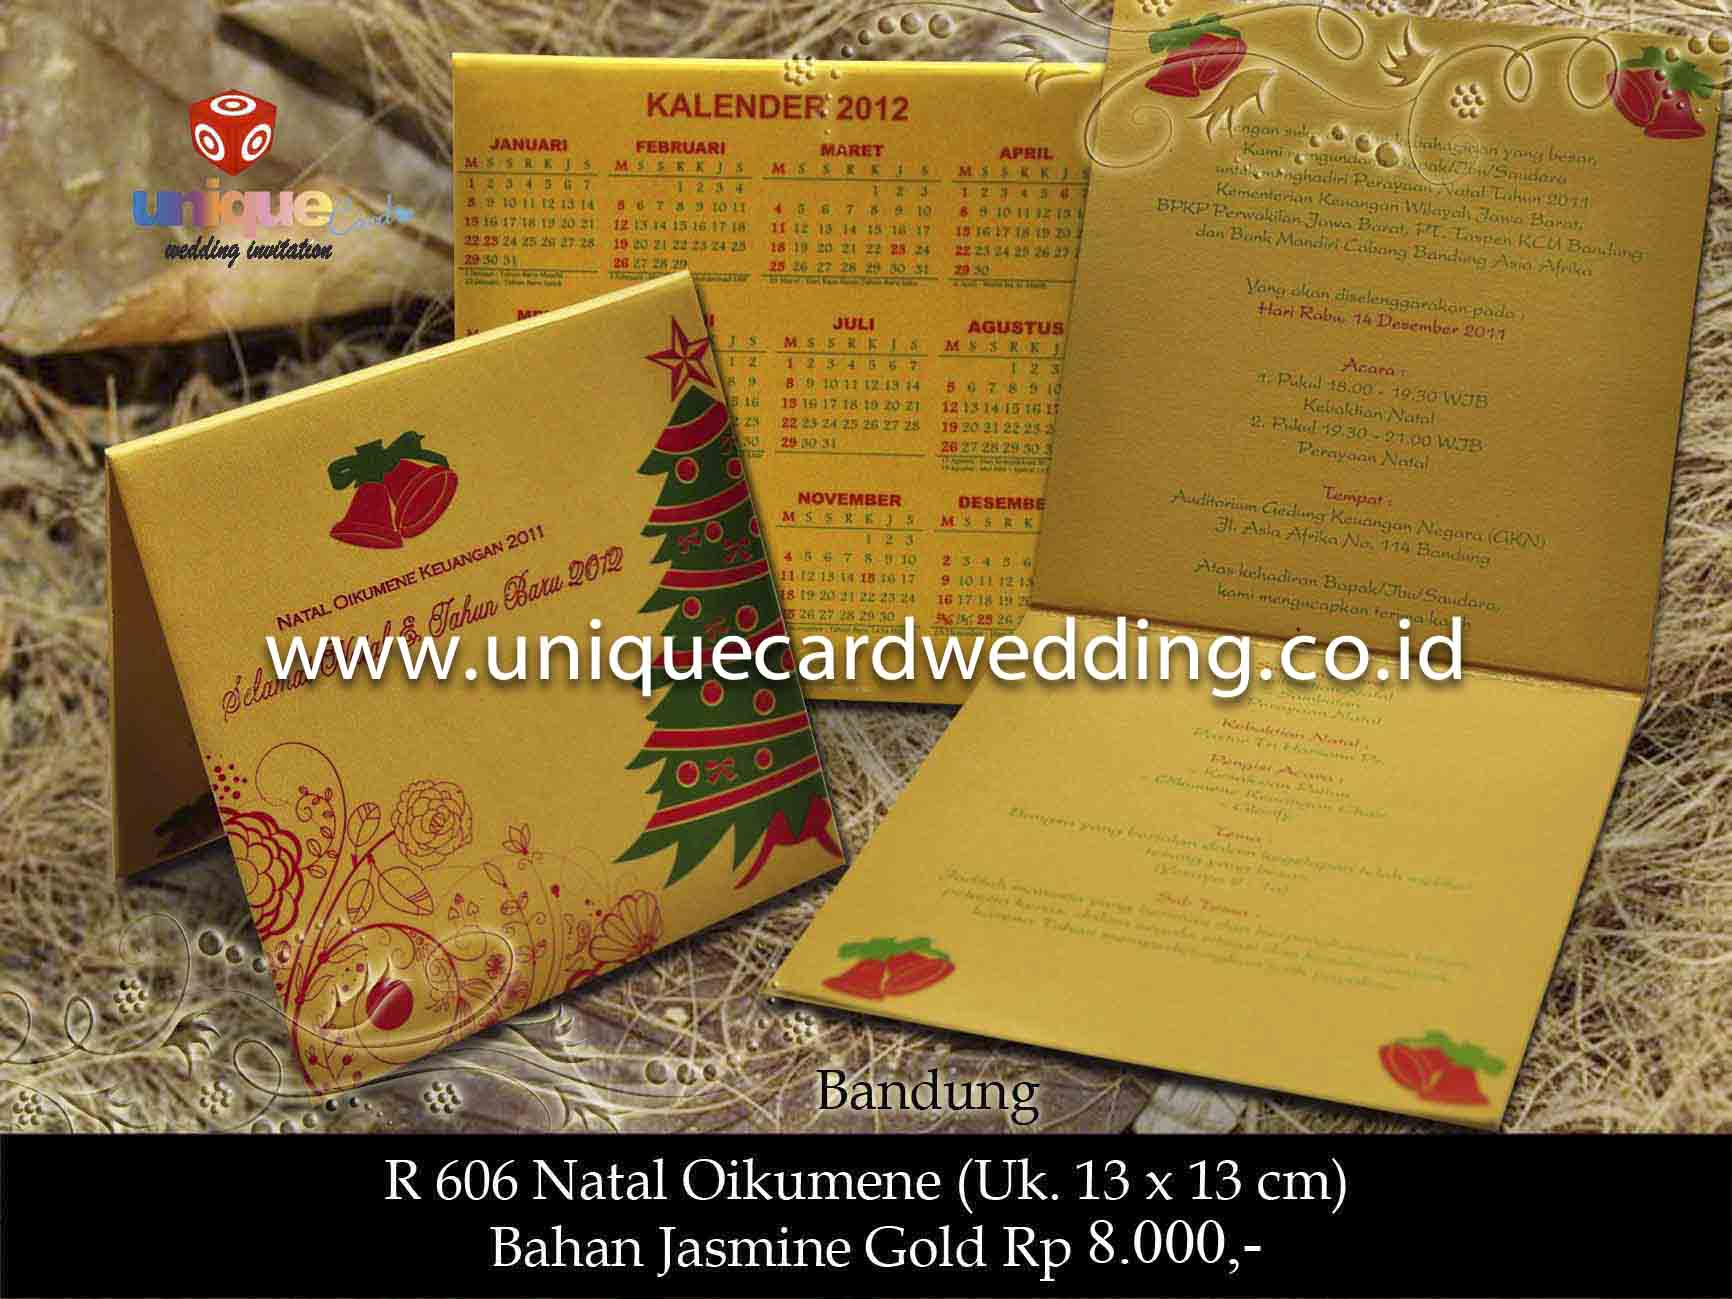 Undangan Pernikahan Natal - Oikumene - Unique Card Wedding ...